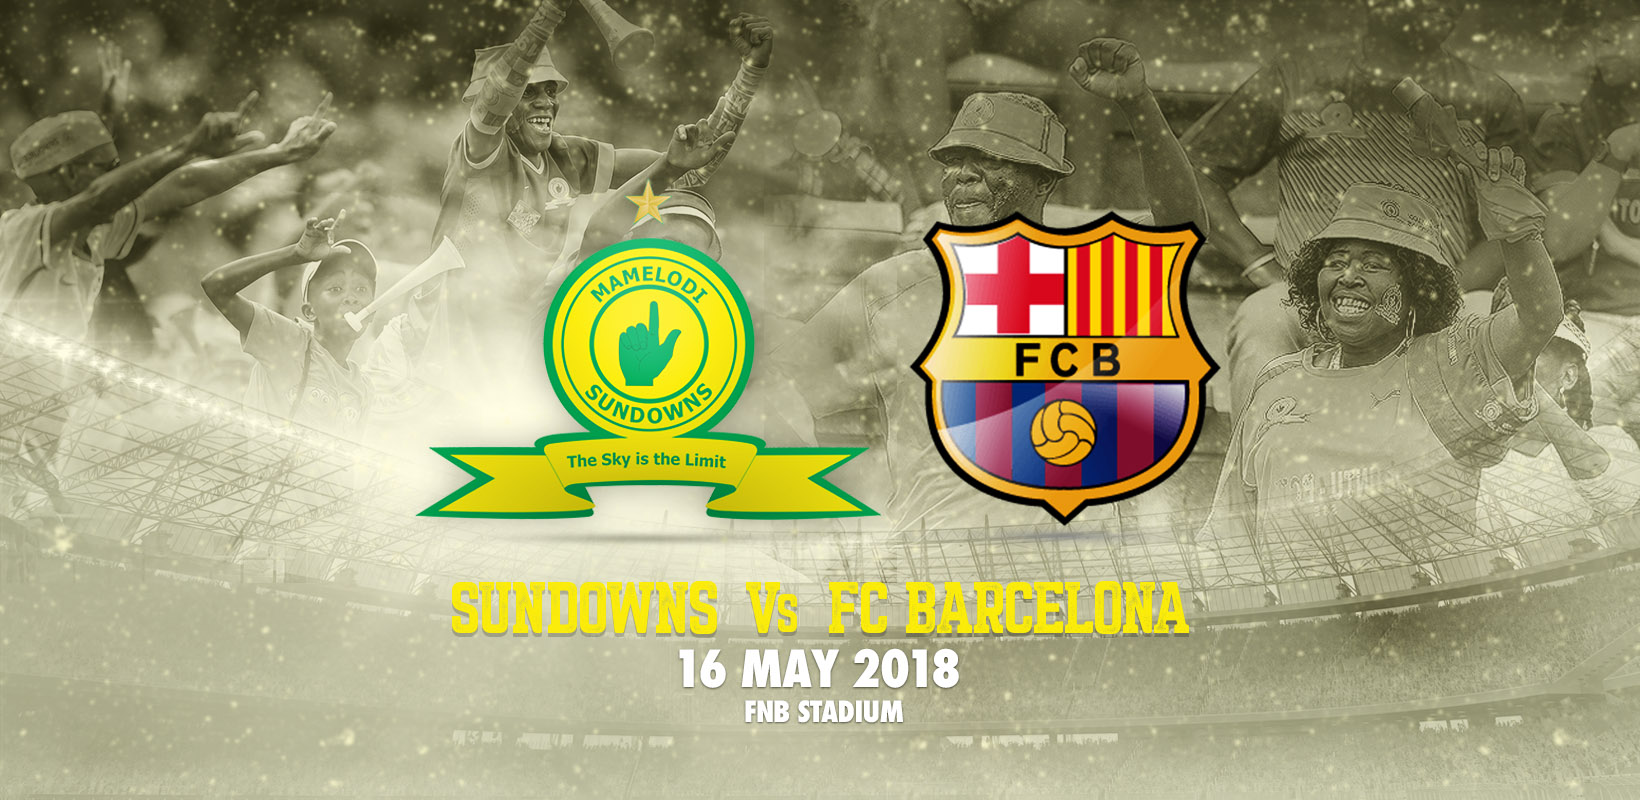 barca – slider – Mamelodi Sundowns Website ea5e0d17a3ca